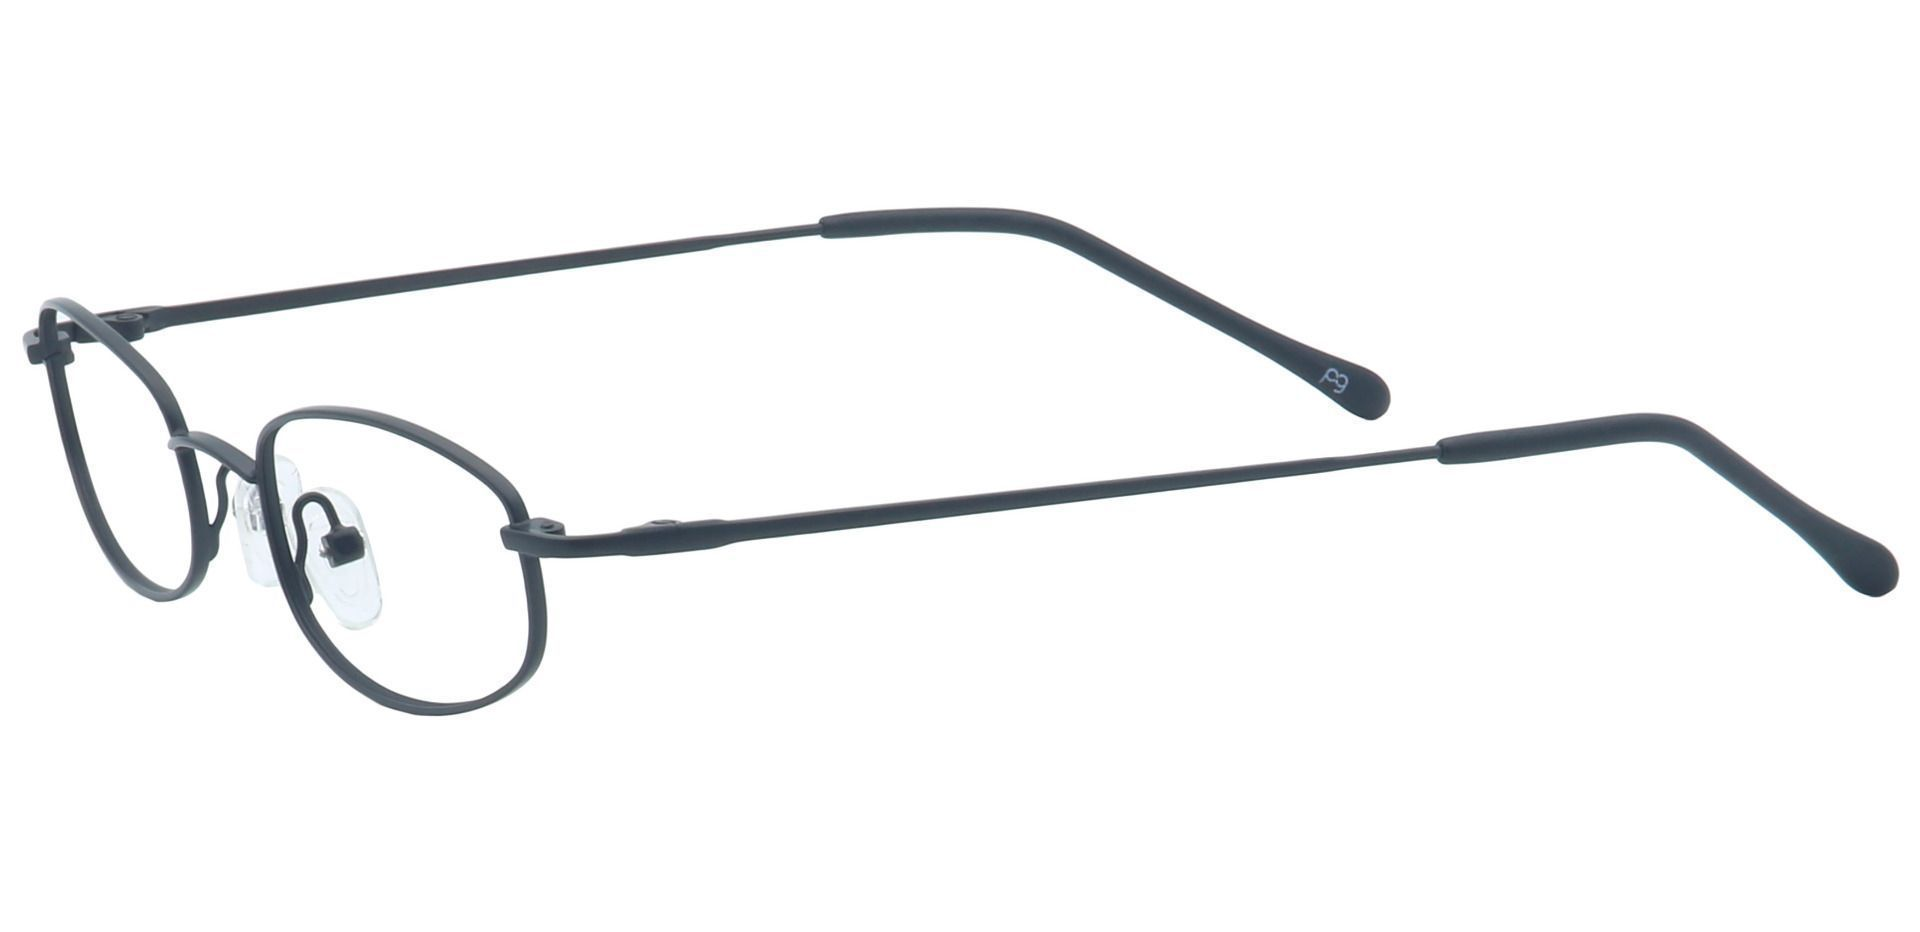 Orton Oval Single Vision Glasses - Black